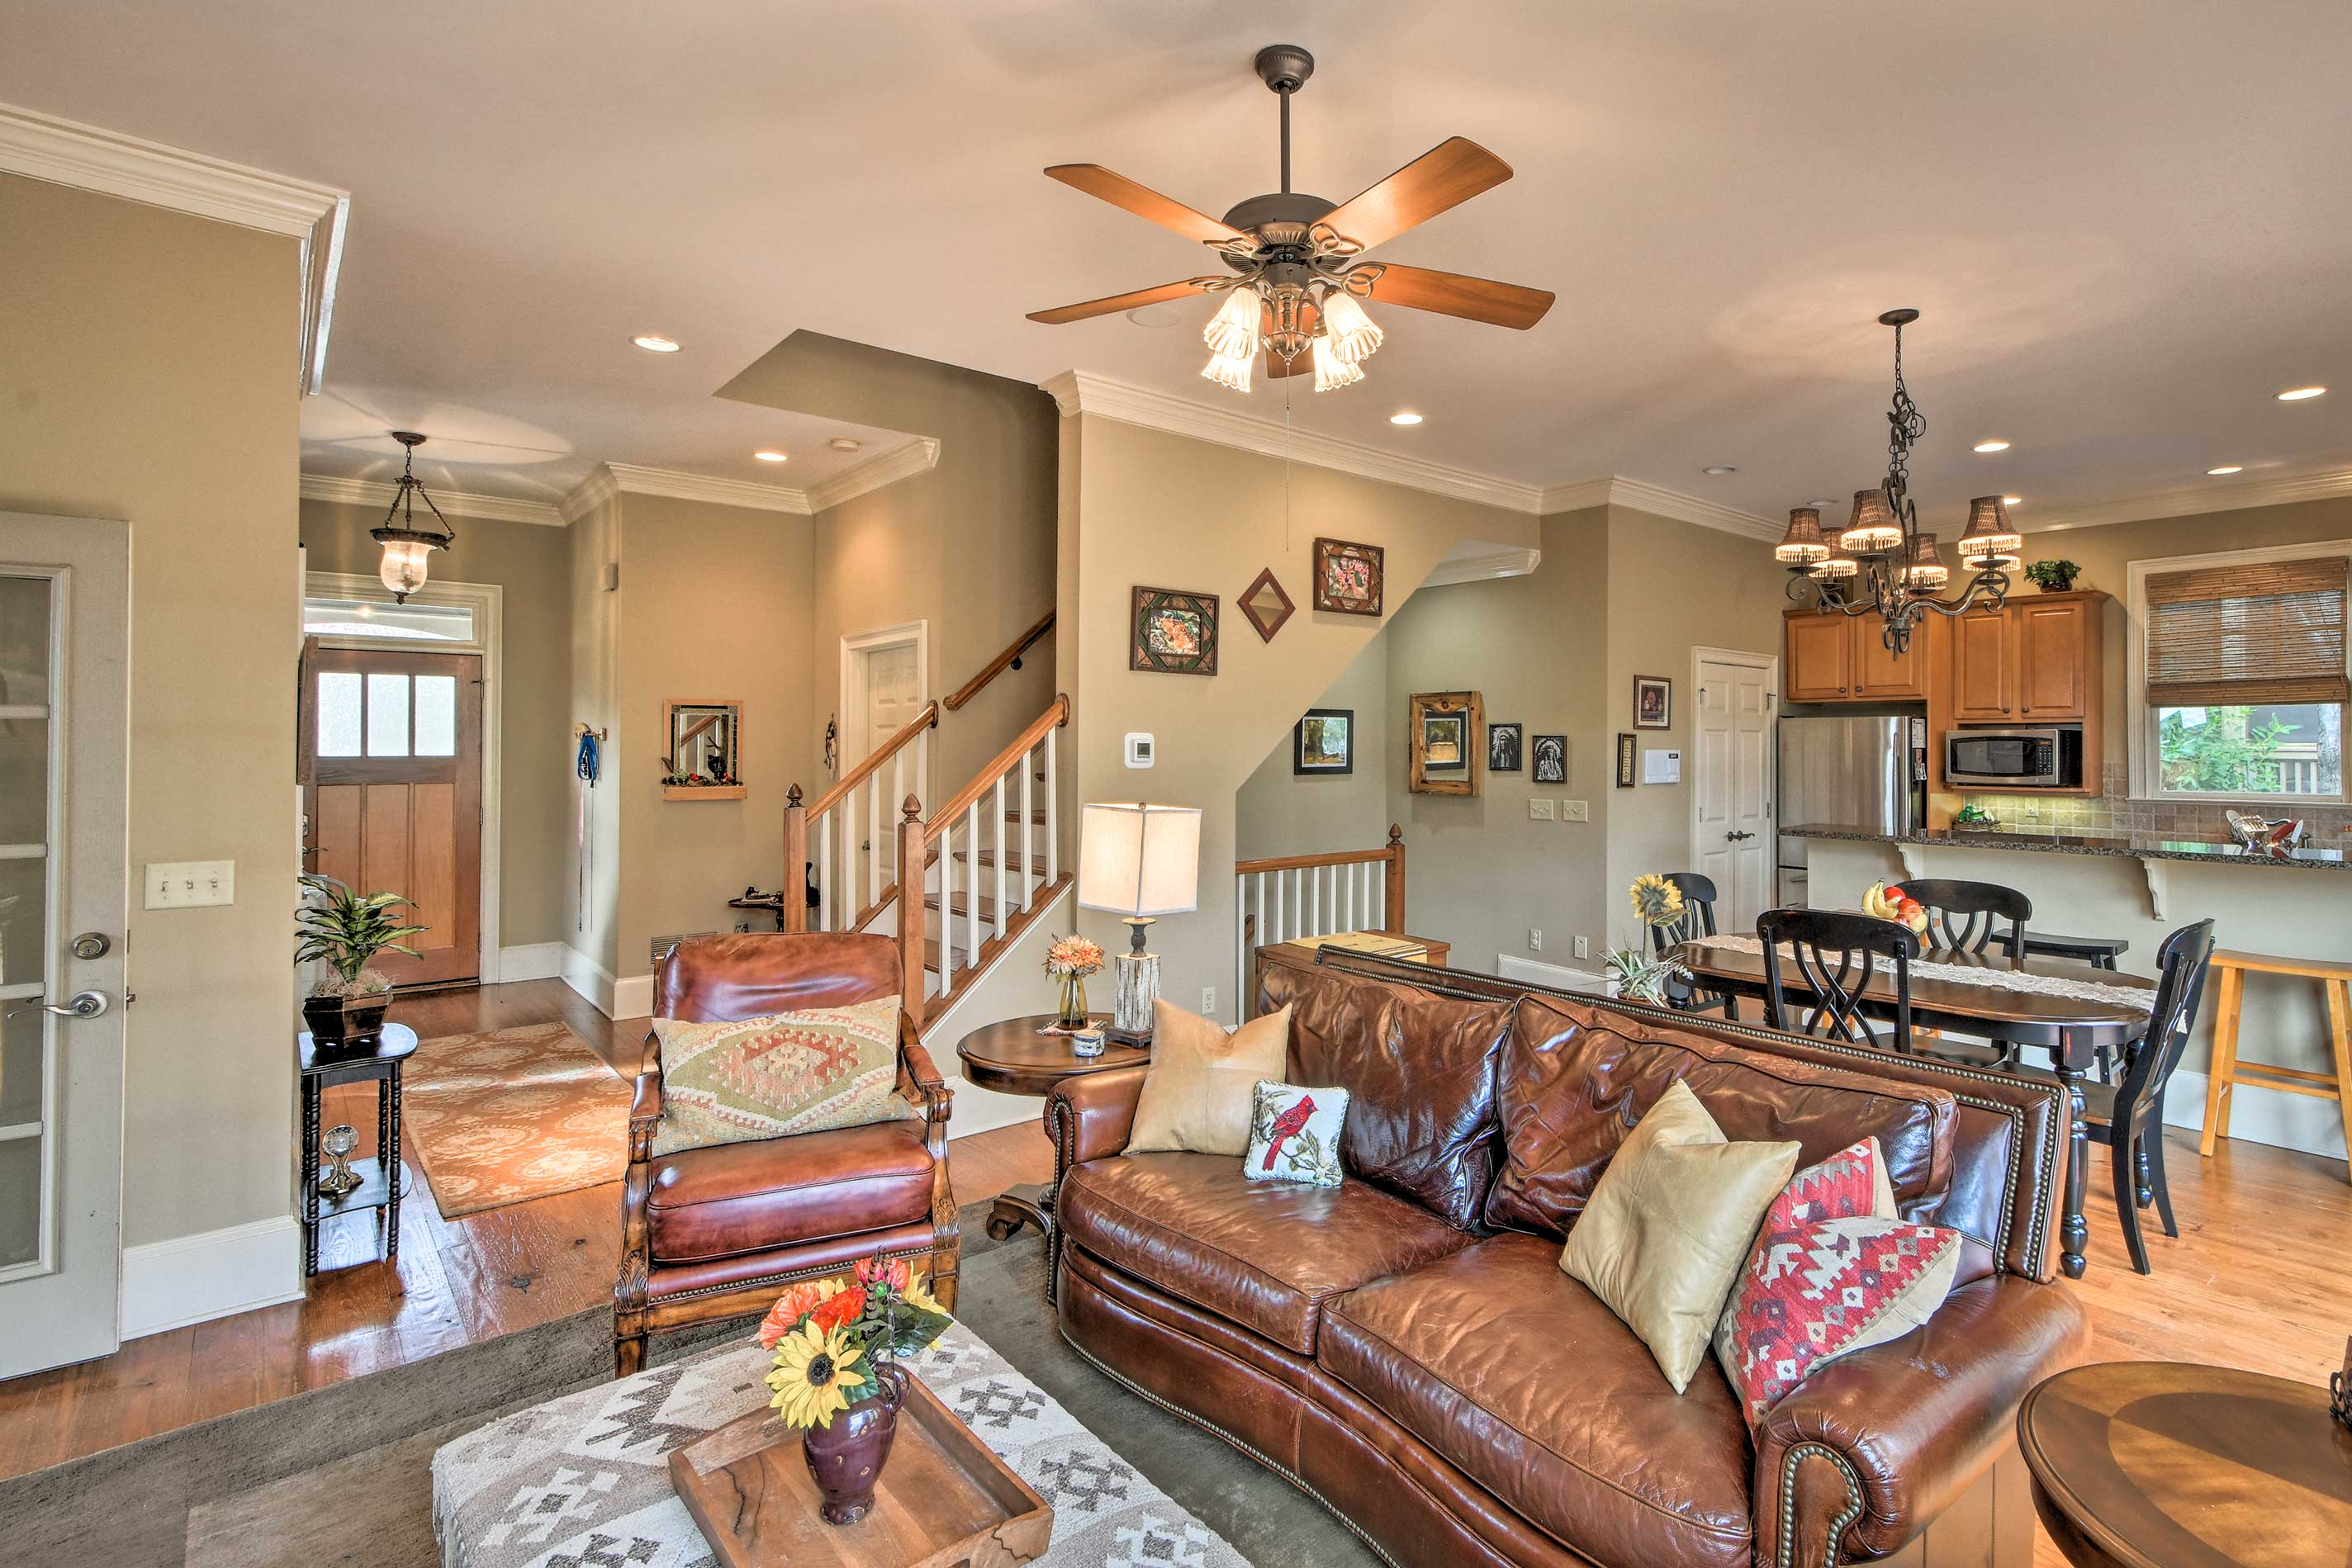 Easily converse with your group in the open-concept layout.